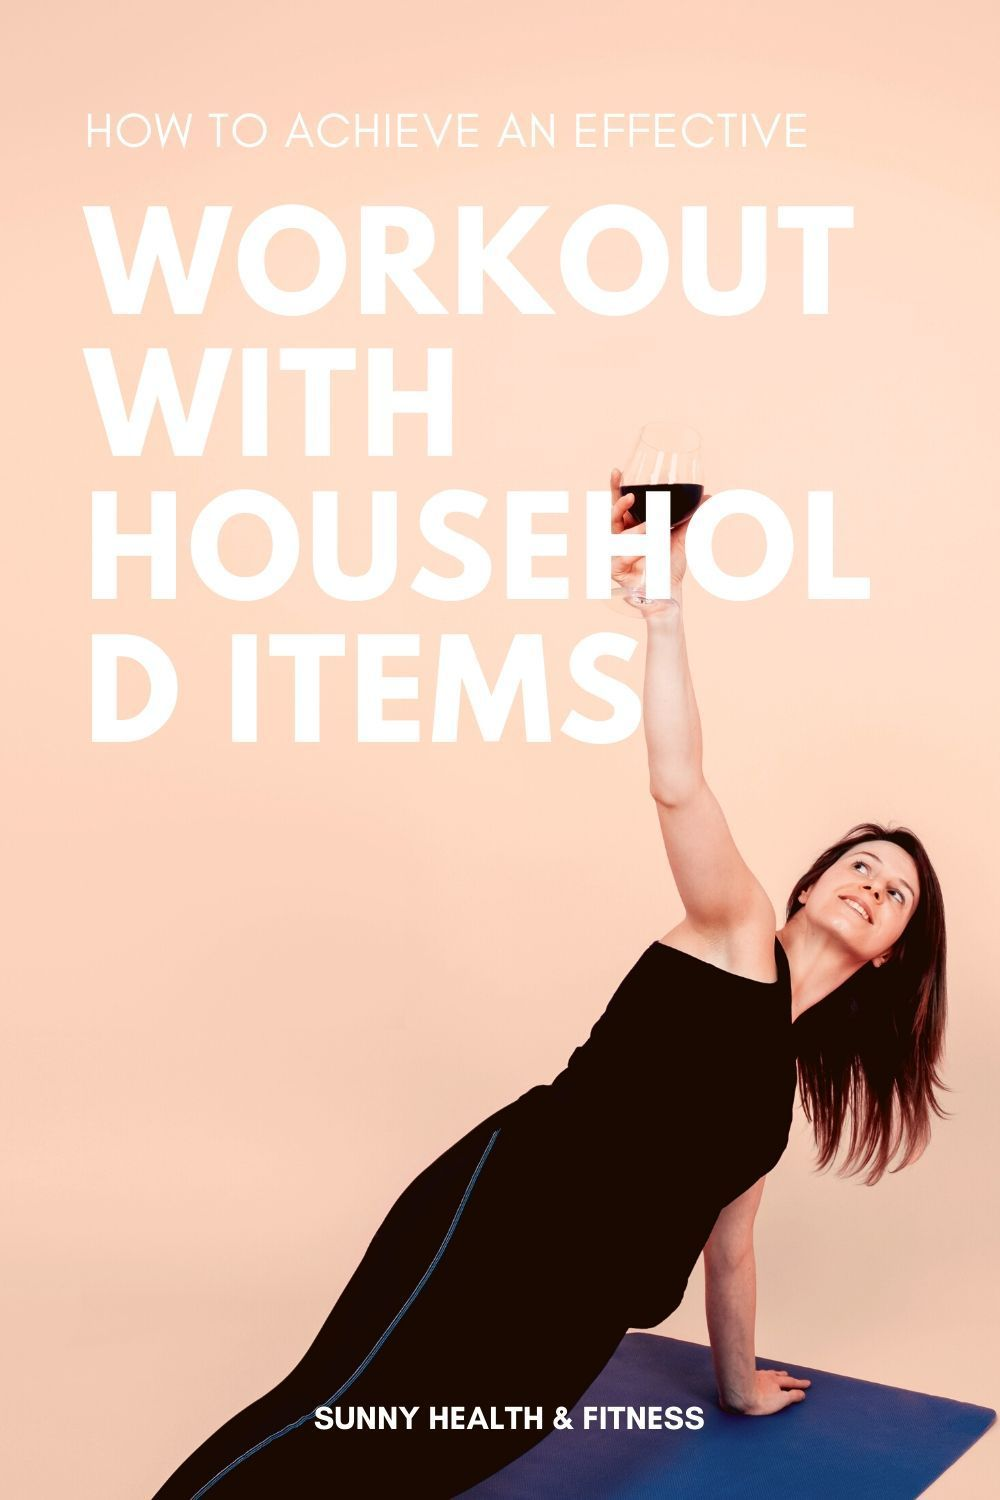 How To Achieve An Effective Workout With Household Items Effective Workouts Workout Health And Fitness Articles